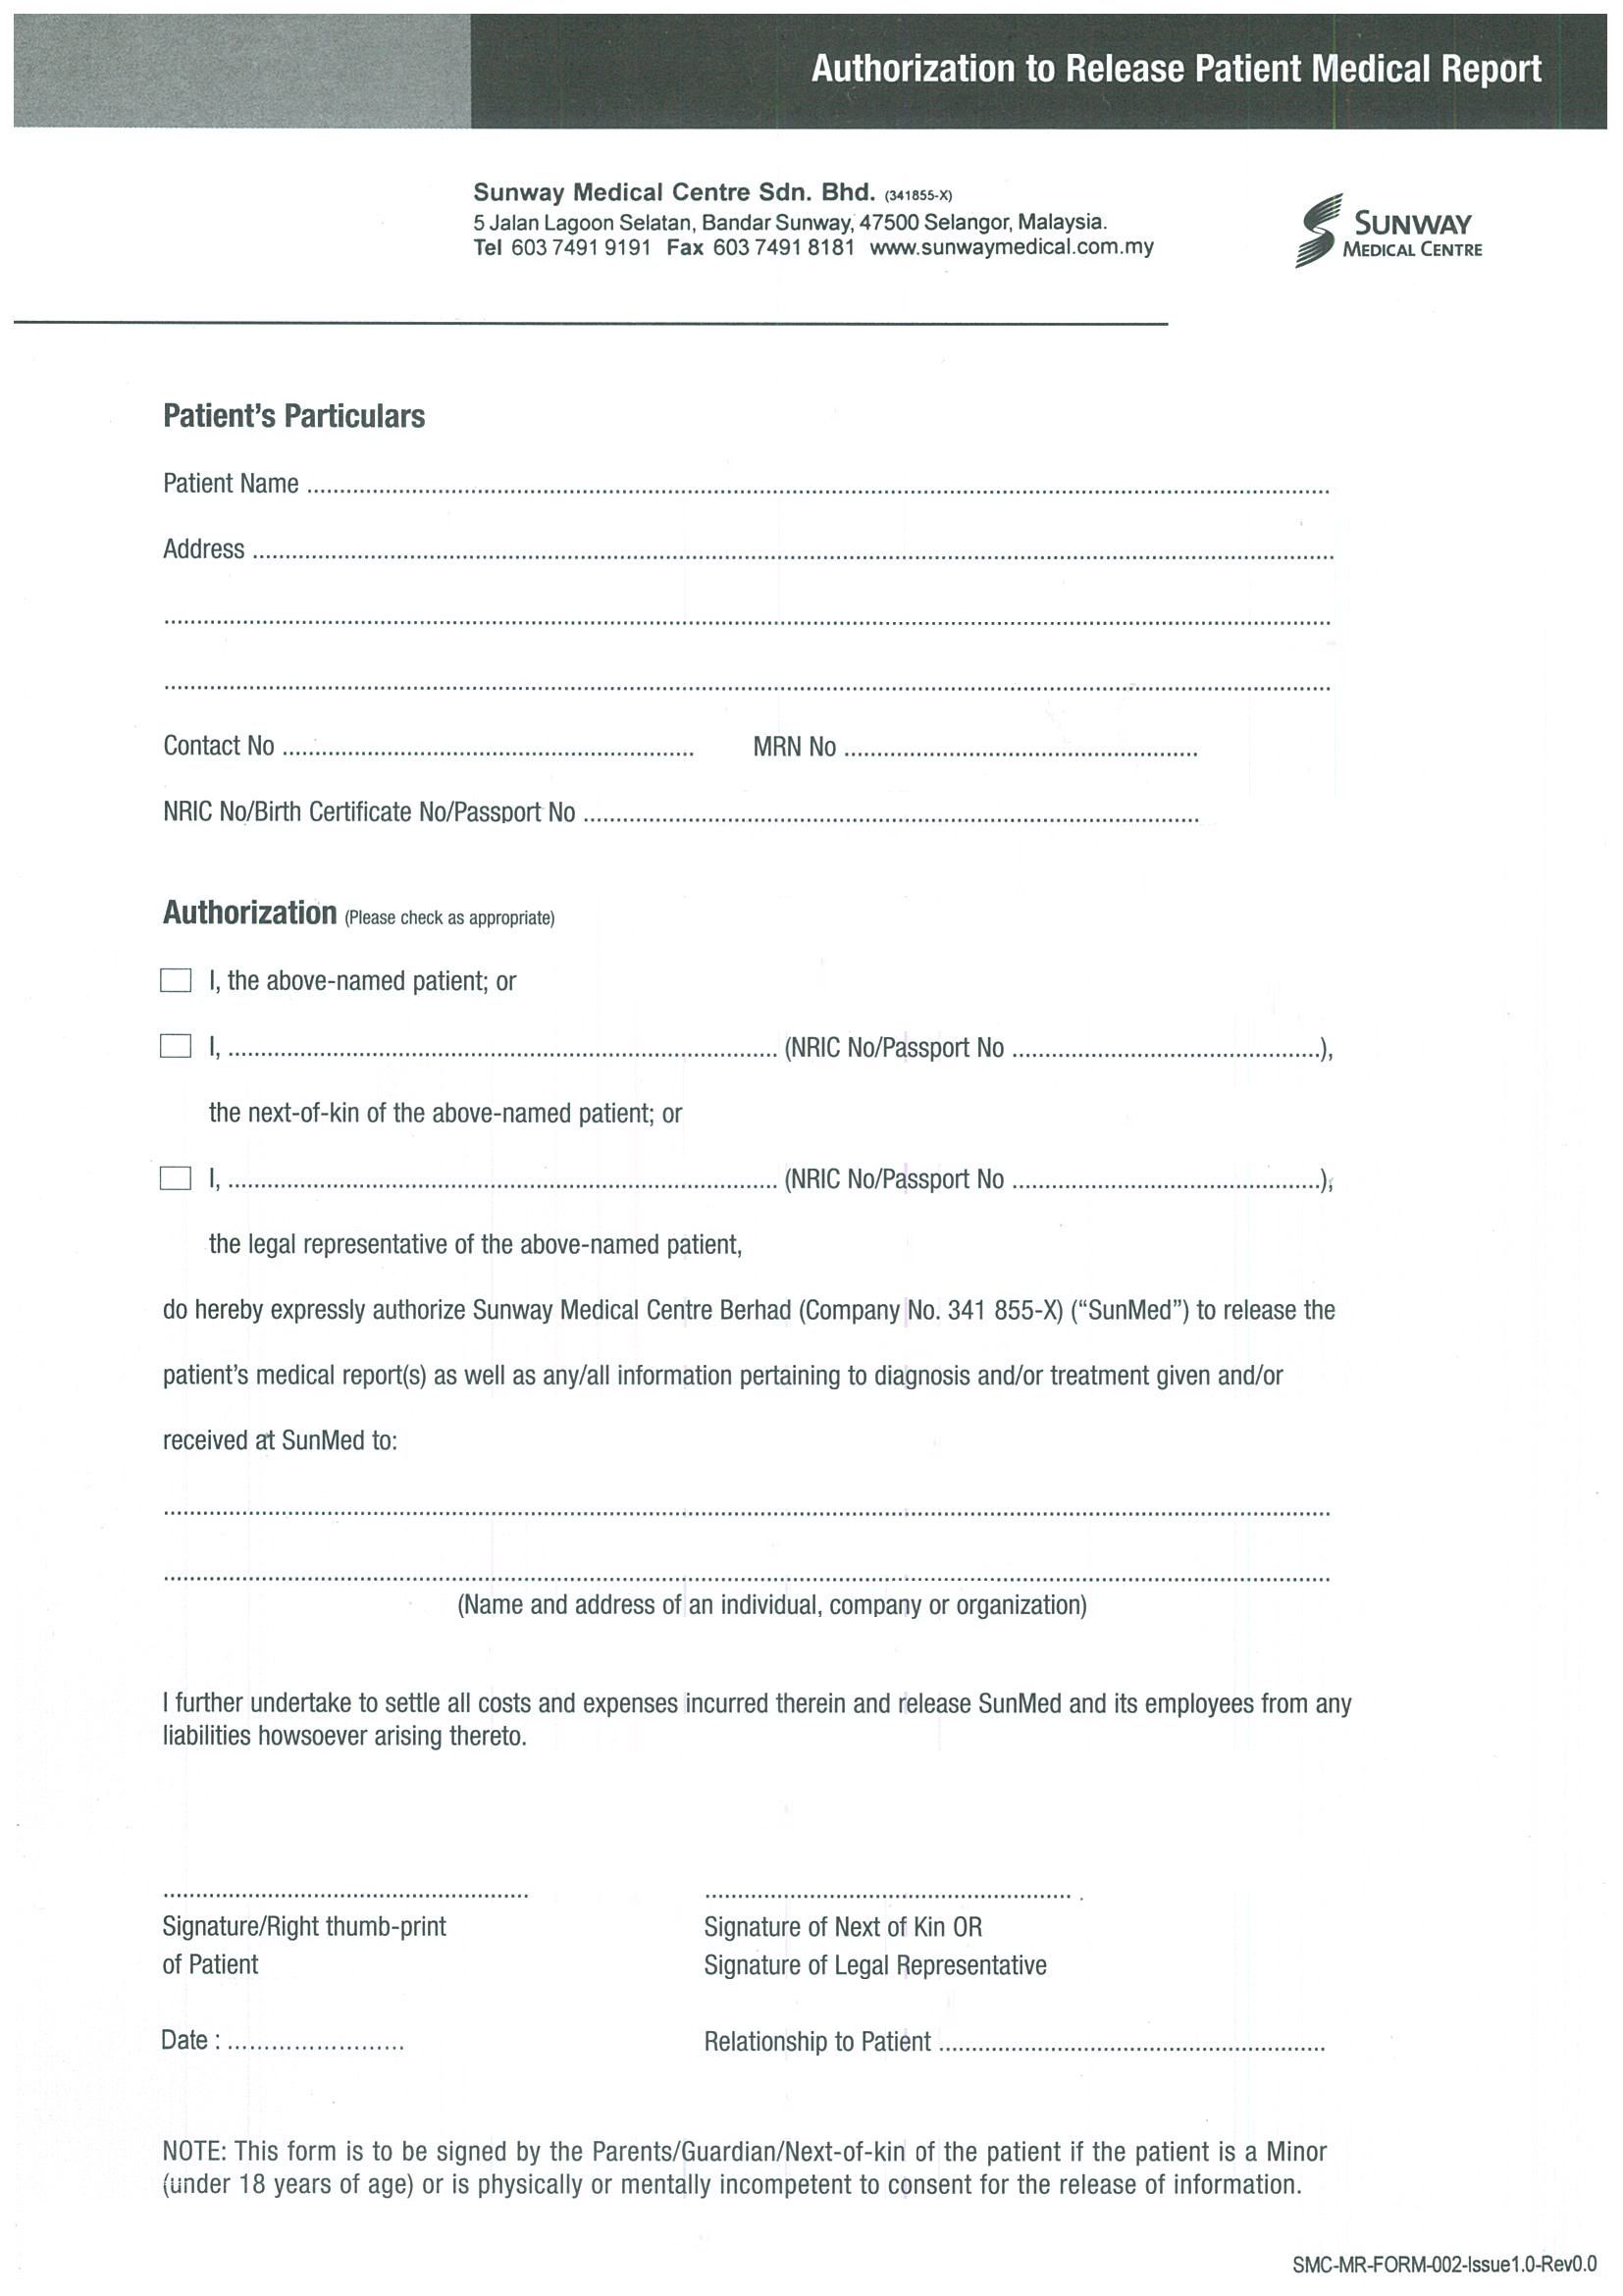 Request For Medical Report Sunway Centre You May Download The